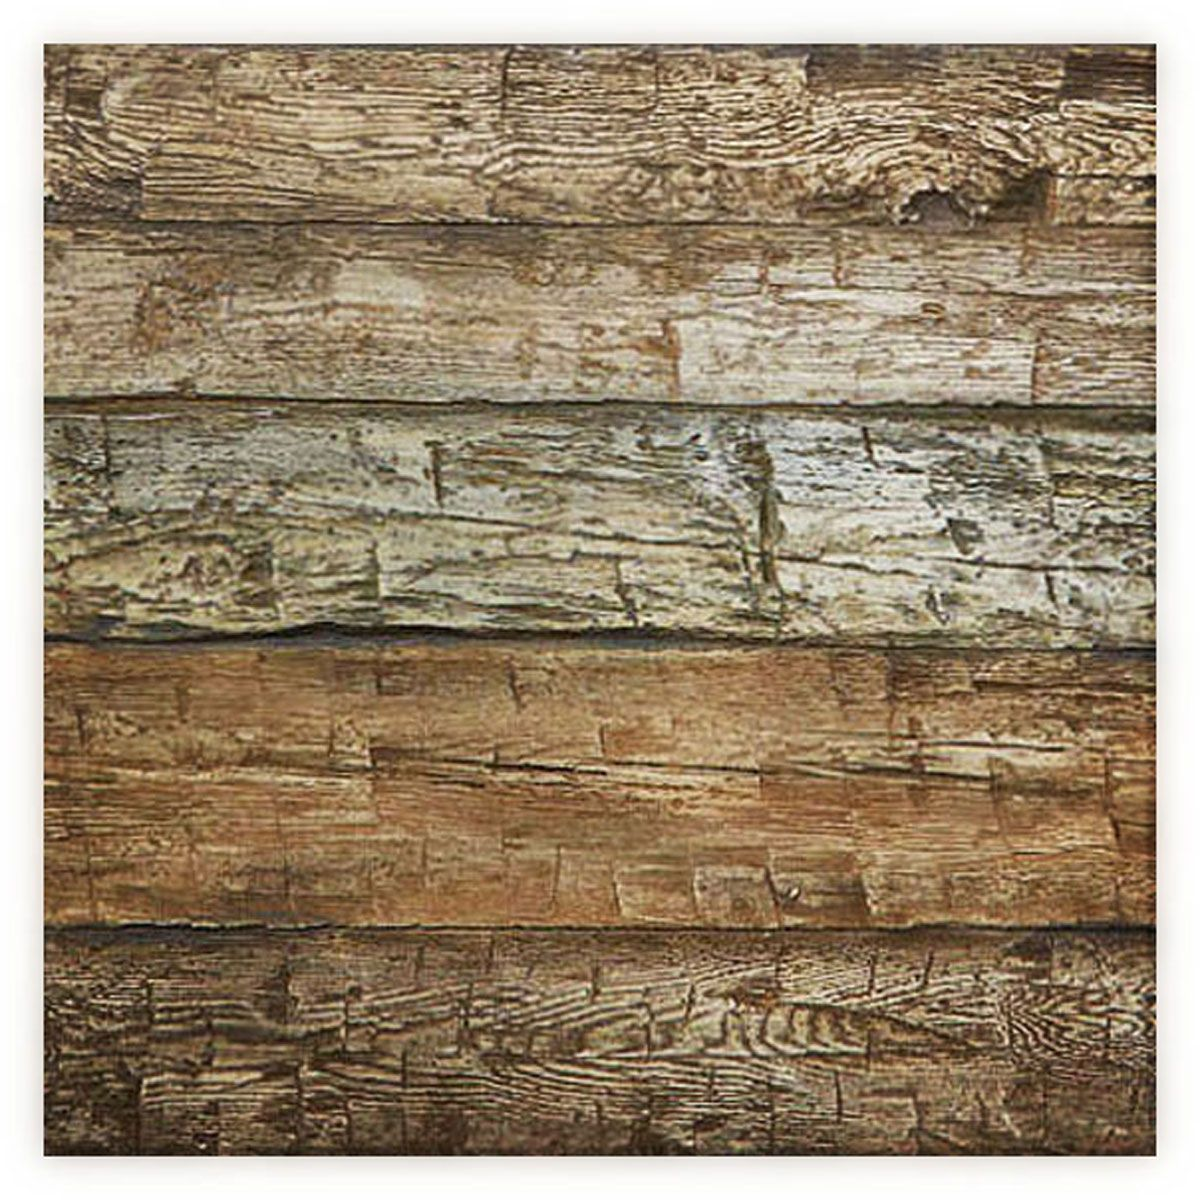 8 Inch W X 10 Inch H Hand Hewn Endurathane Faux Wood Siding Panel Sample Weathered 19 99 Wood Panel Siding Wood Siding Exterior Wood Siding